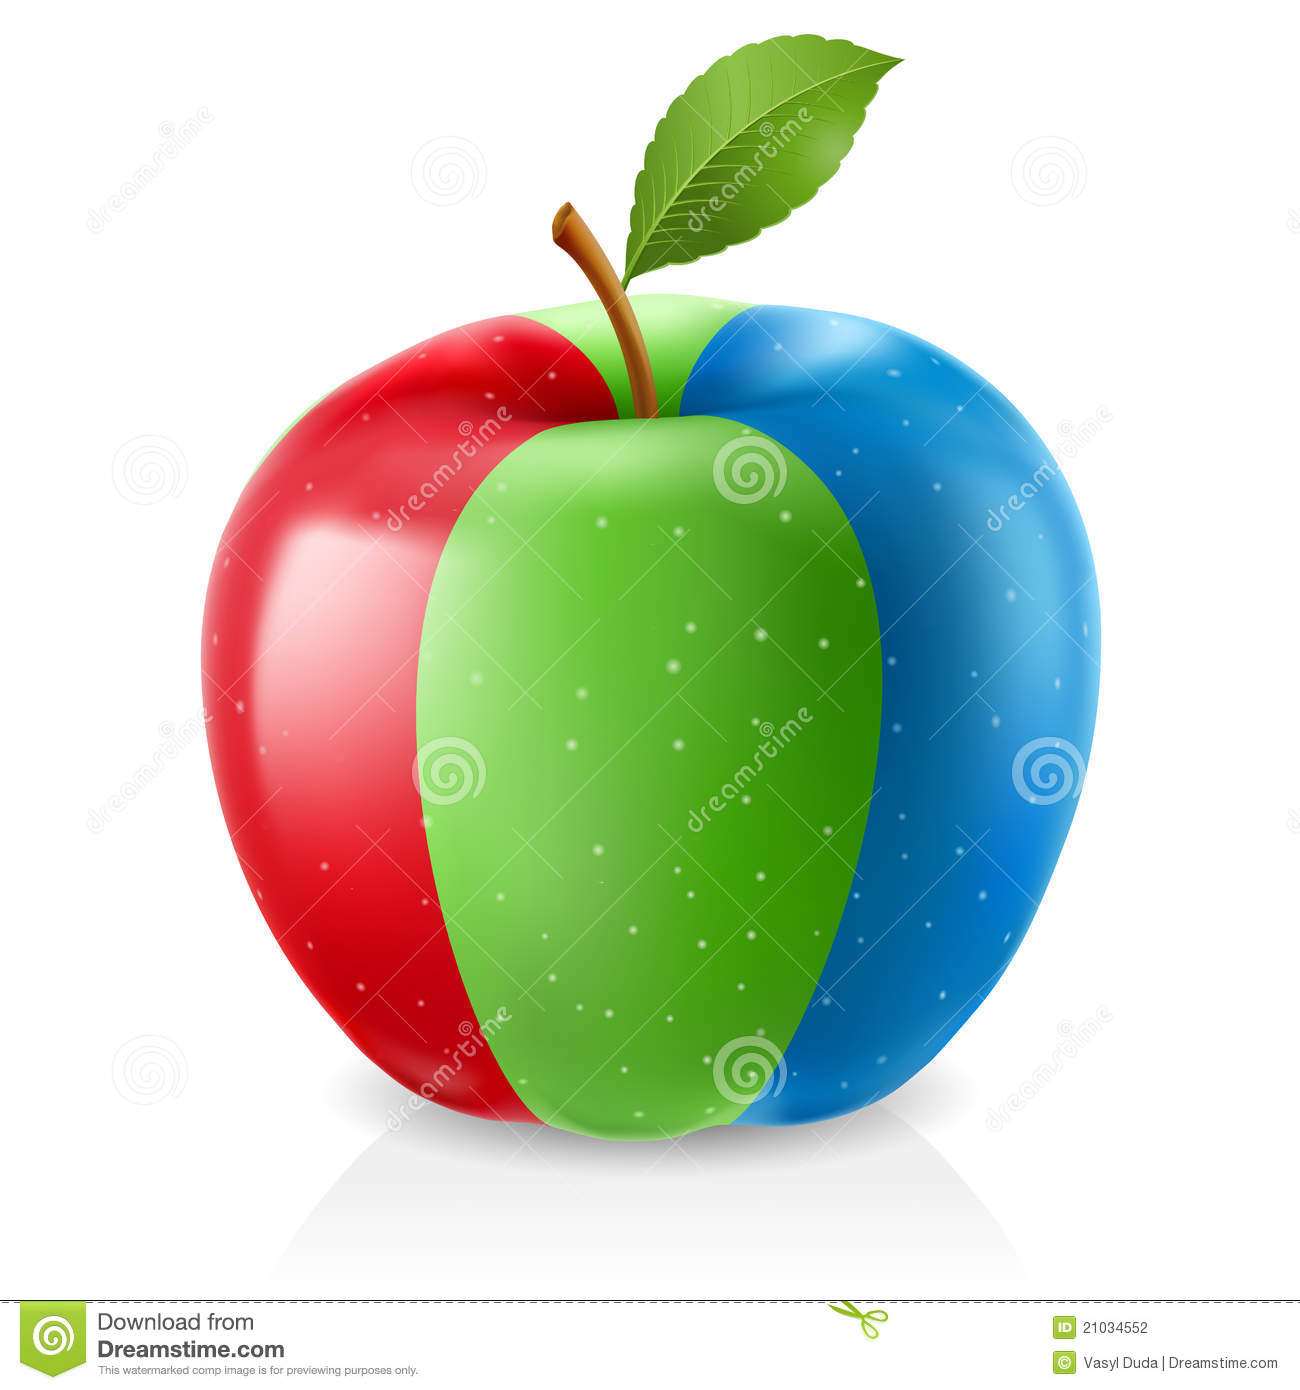 delicious green apple illustration - photo #16